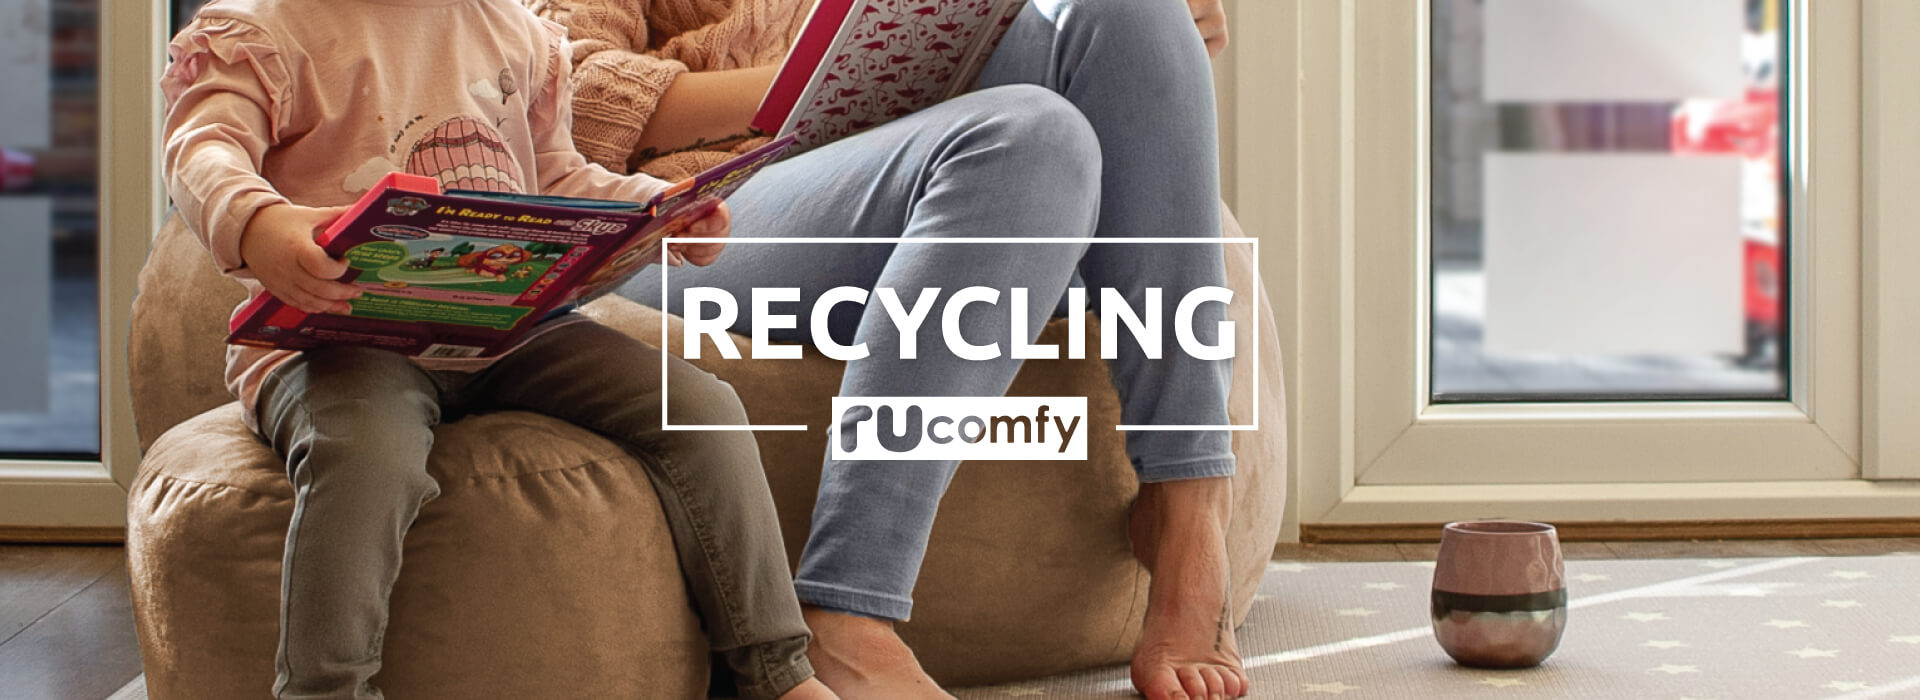 recycling page banner